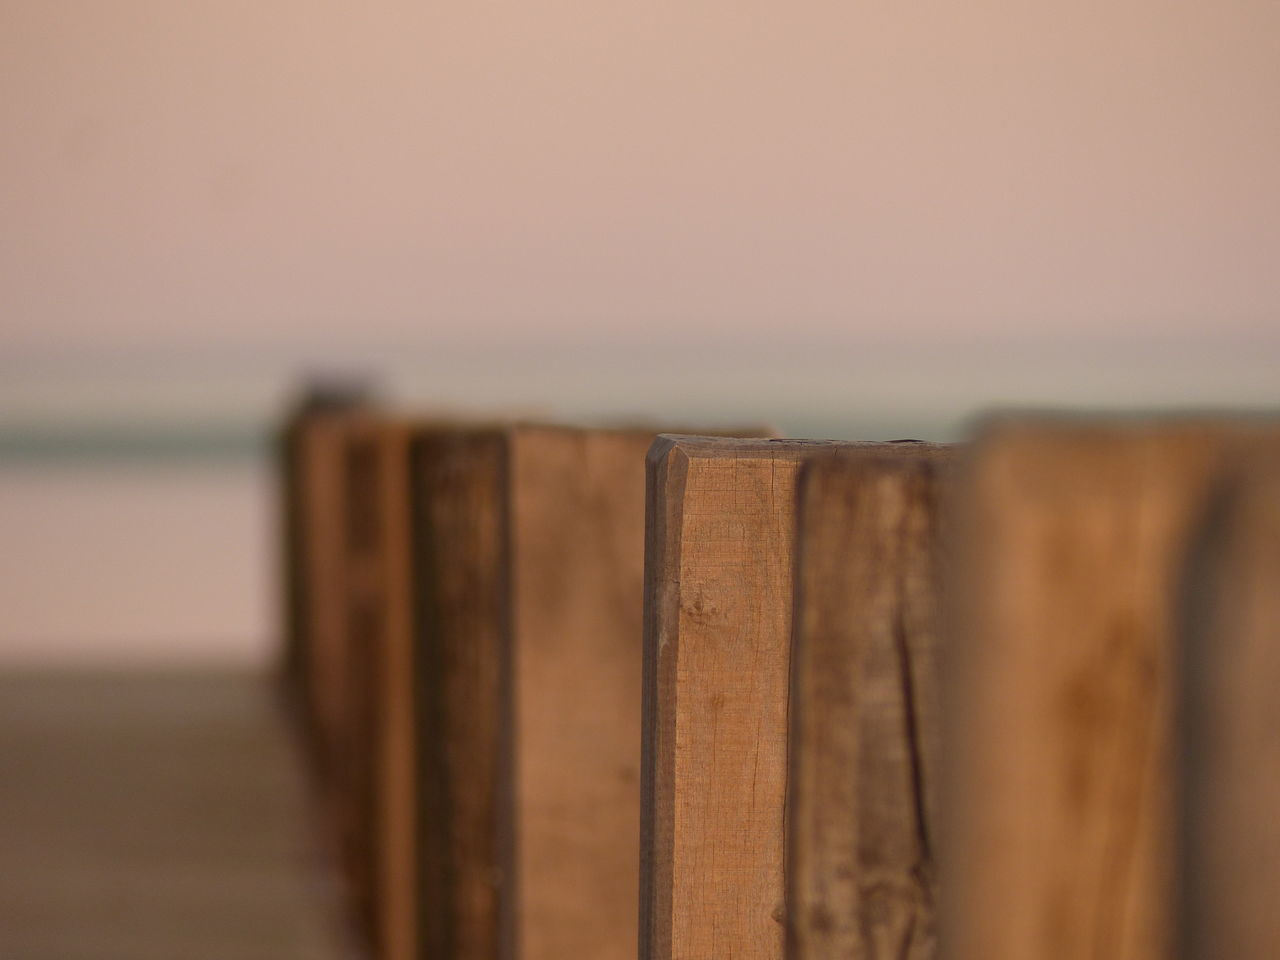 sea, selective focus, water, beach, wood - material, horizon over water, no people, close-up, nature, focus on foreground, outdoors, day, beauty in nature, sky